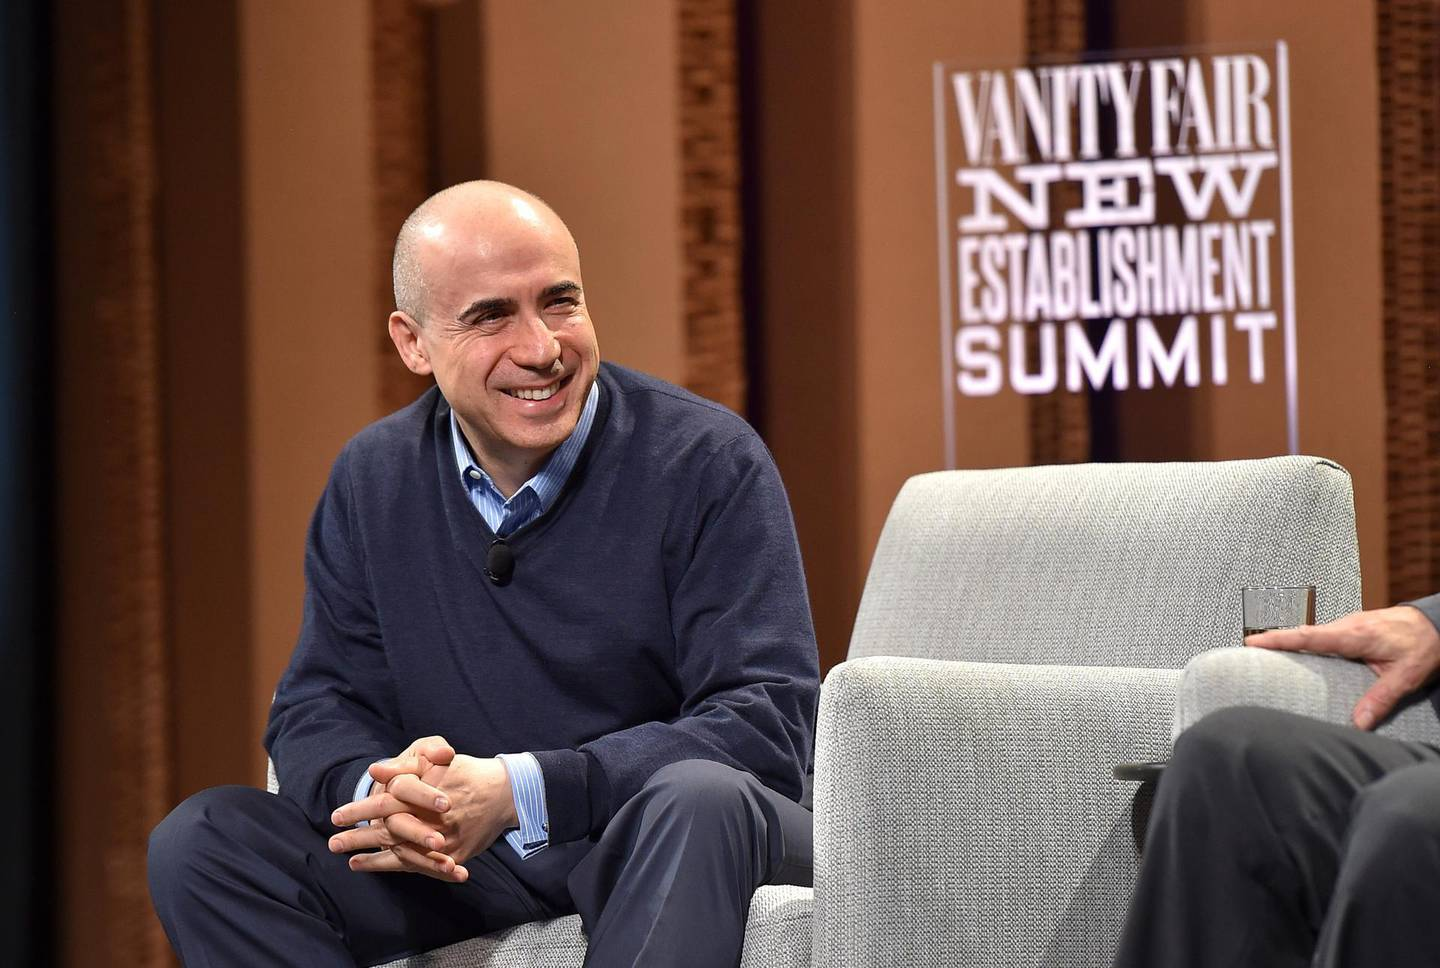 """SAN FRANCISCO, CA - OCTOBER 07:  DST Global Founder Yuri Milner speaks onstage during """"Are We Alone in the Universe?"""" at the Vanity Fair New Establishment Summit at Yerba Buena Center for the Arts on October 7, 2015 in San Francisco, California.  (Photo by Mike Windle/Getty Images for Vanity Fair)"""